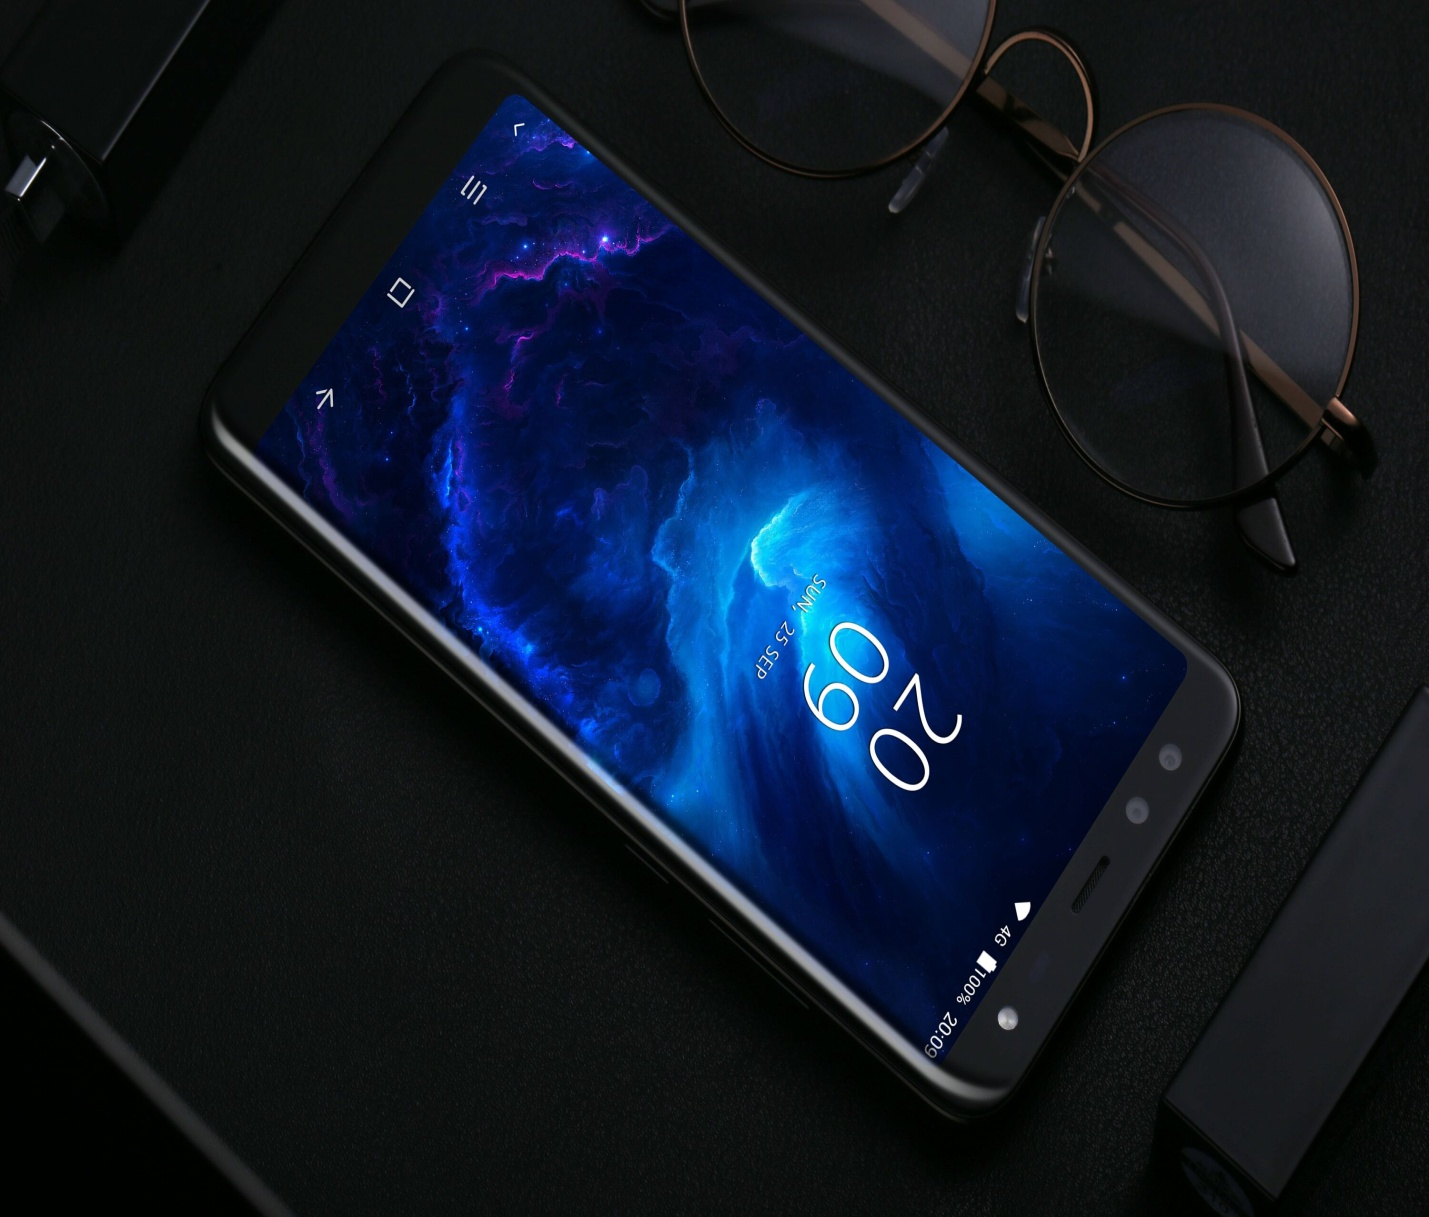 C:UsersAlexeyDownloadsFull screen Blackview S8 incoming, not just for looking good-Sep.27thFull screen Blackview S8 incoming, not just for looking good-Sep.27thS8-2.jpg